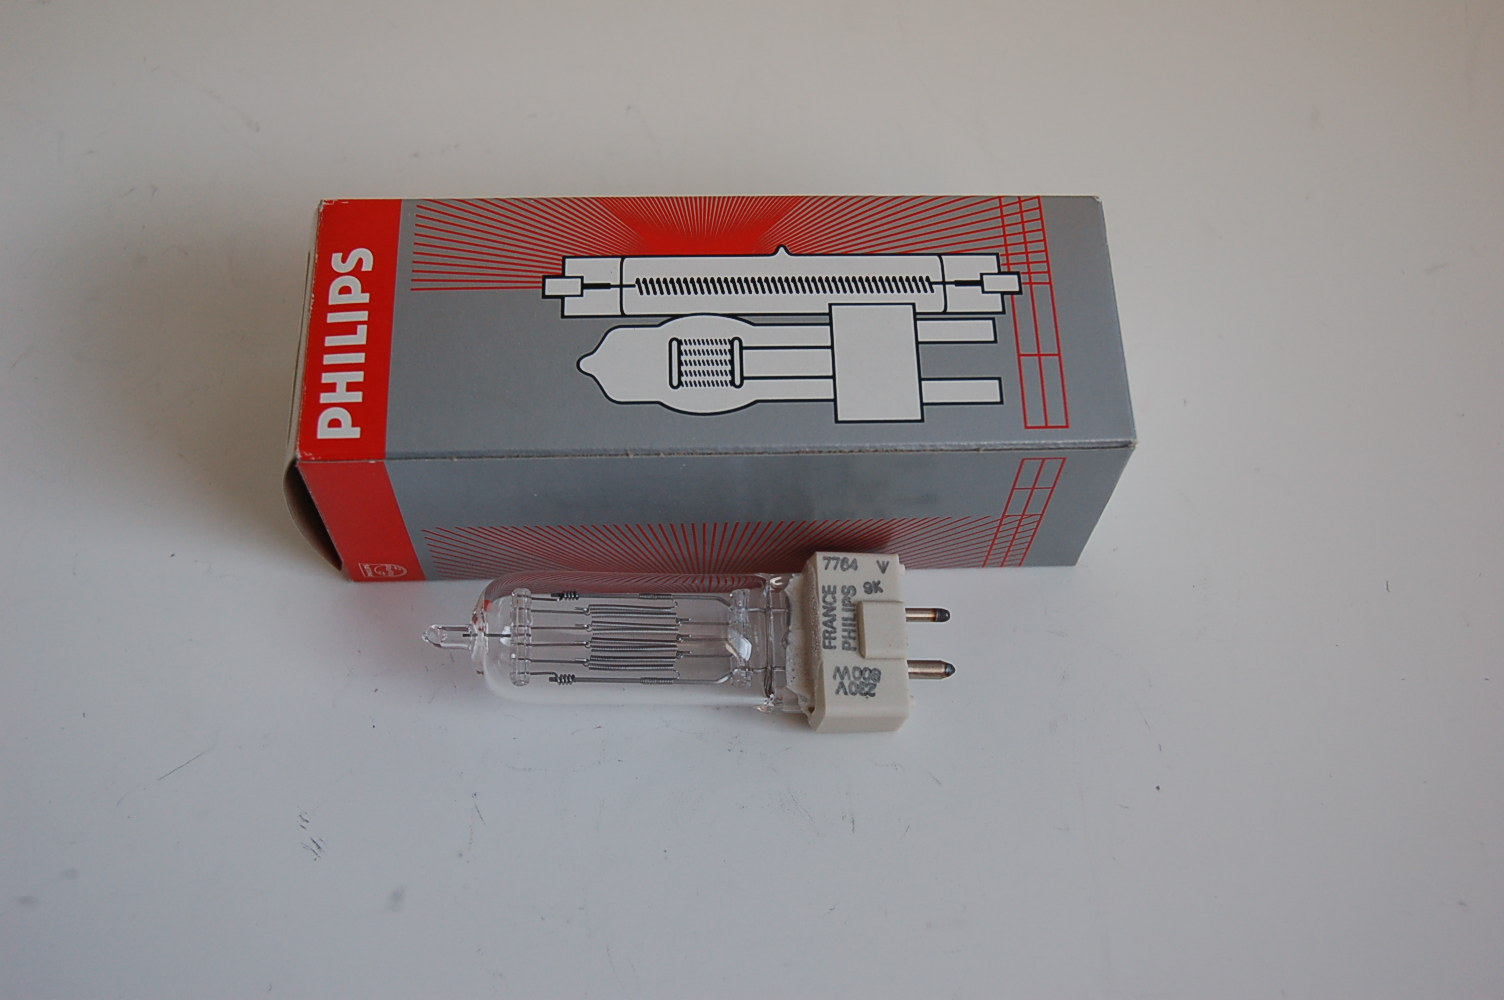 Philips Halogen Lampe 230V 800W GY9.5 #7764